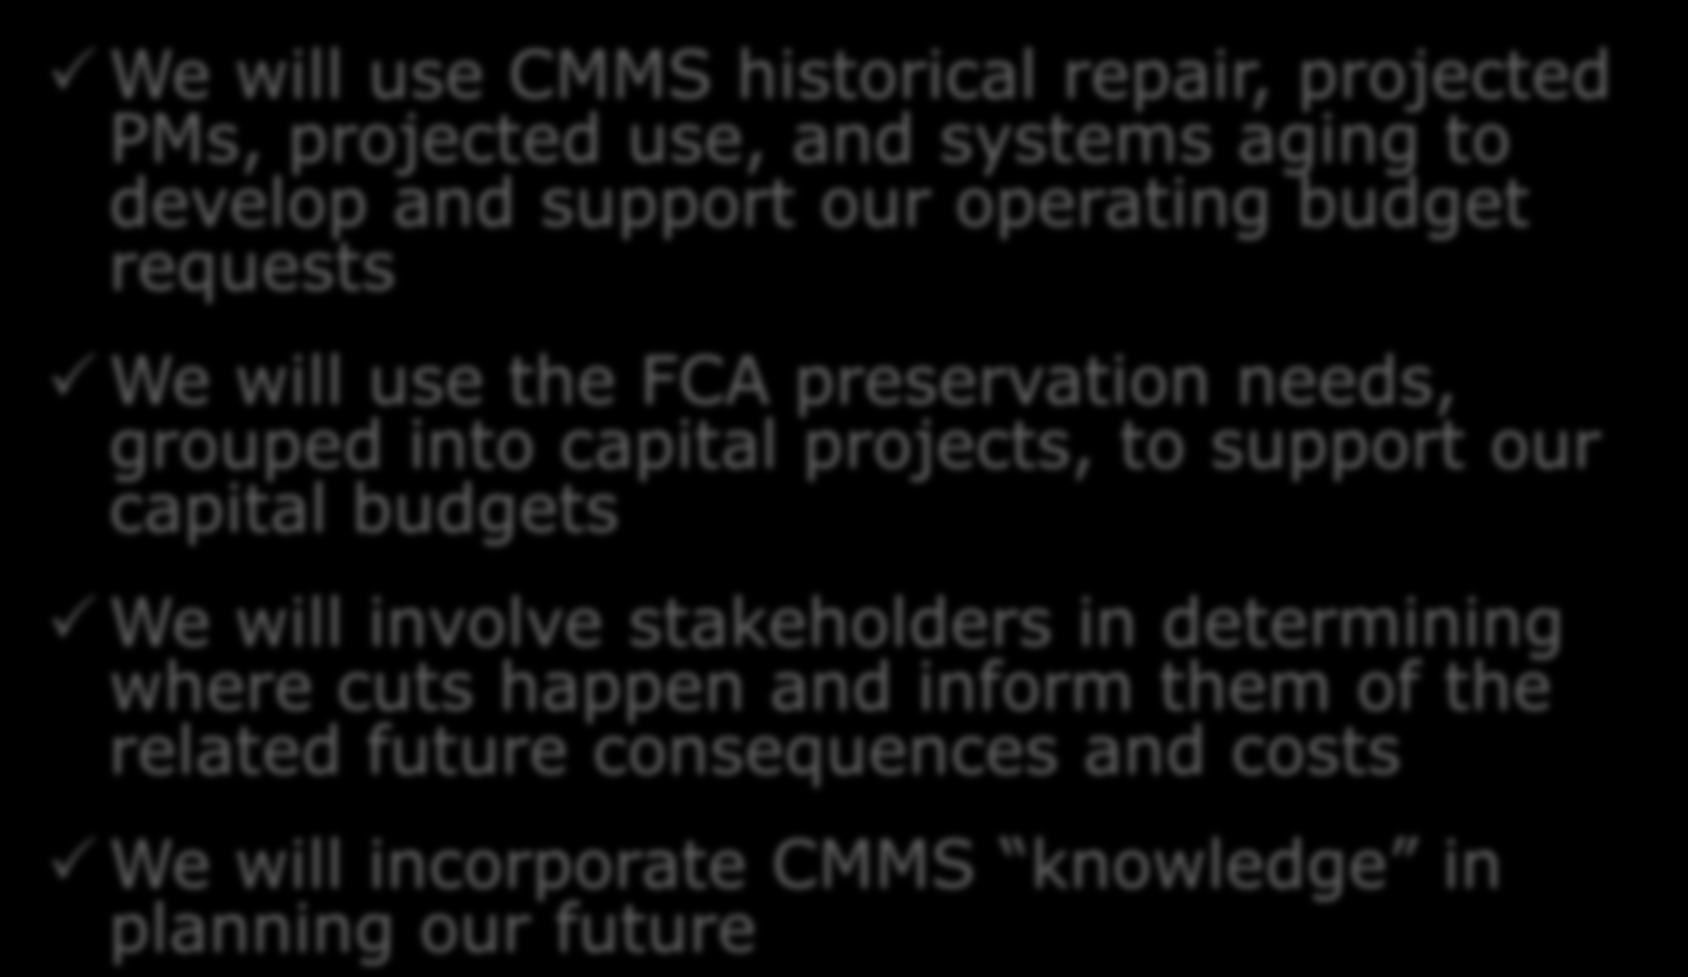 Planning and Budgeting We will use CMMS historical repair, projected PMs, projected use, and systems aging to develop and support our operating budget requests We will use the FCA preservation needs,